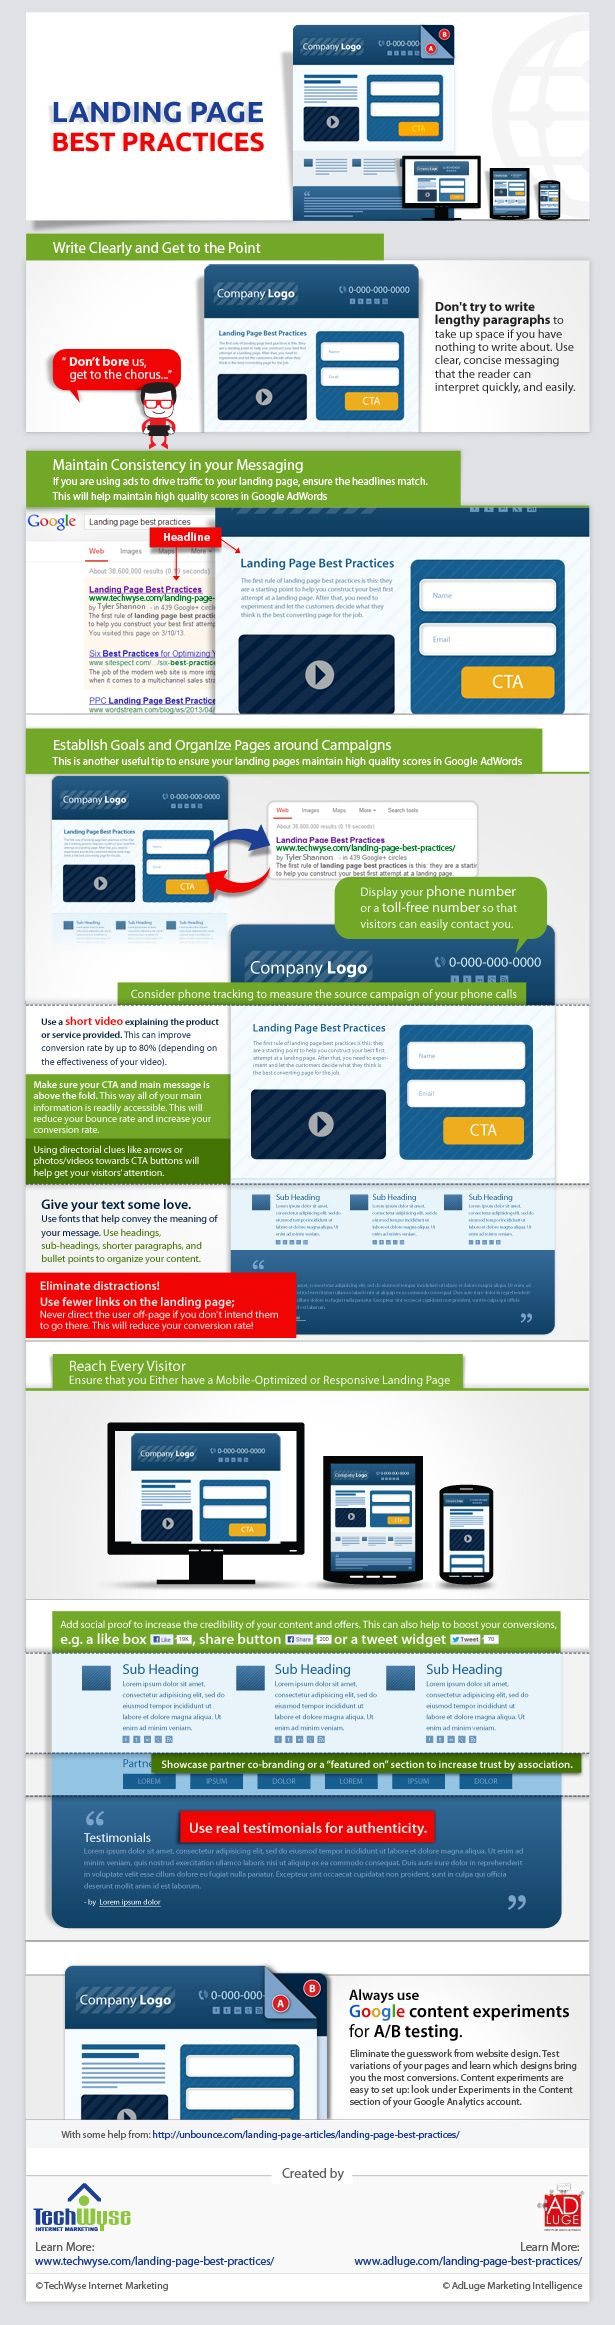 Landing Page Best Practices: How to Design the Perfect Landing Page [INFOGRAPHIC]